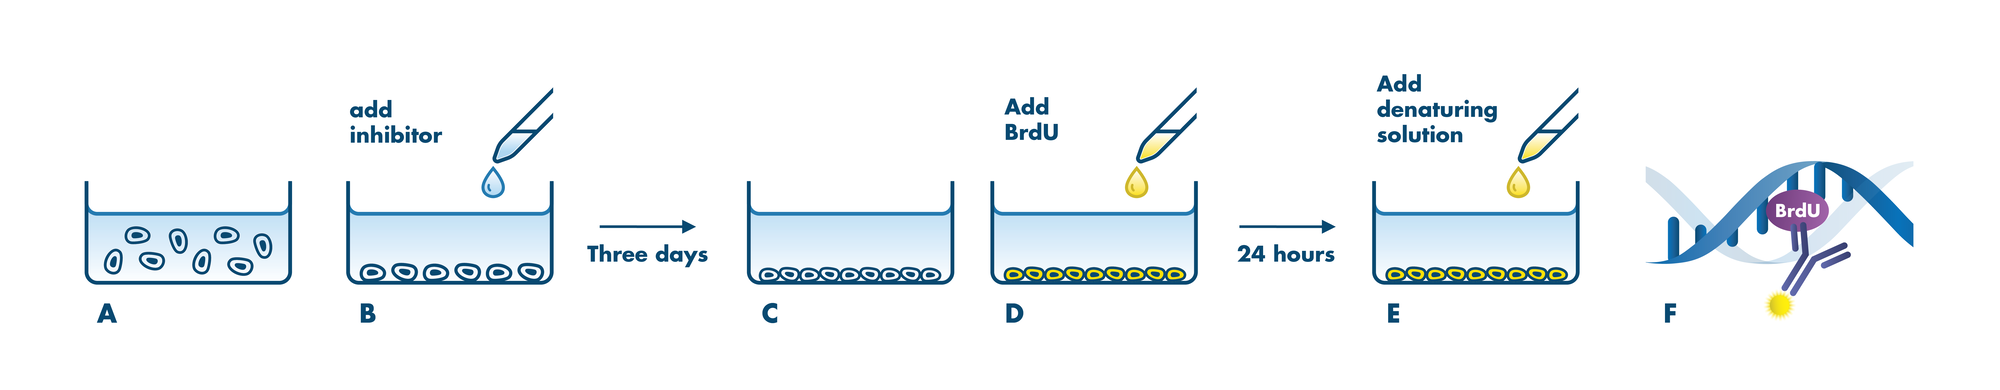 BrdU Assay